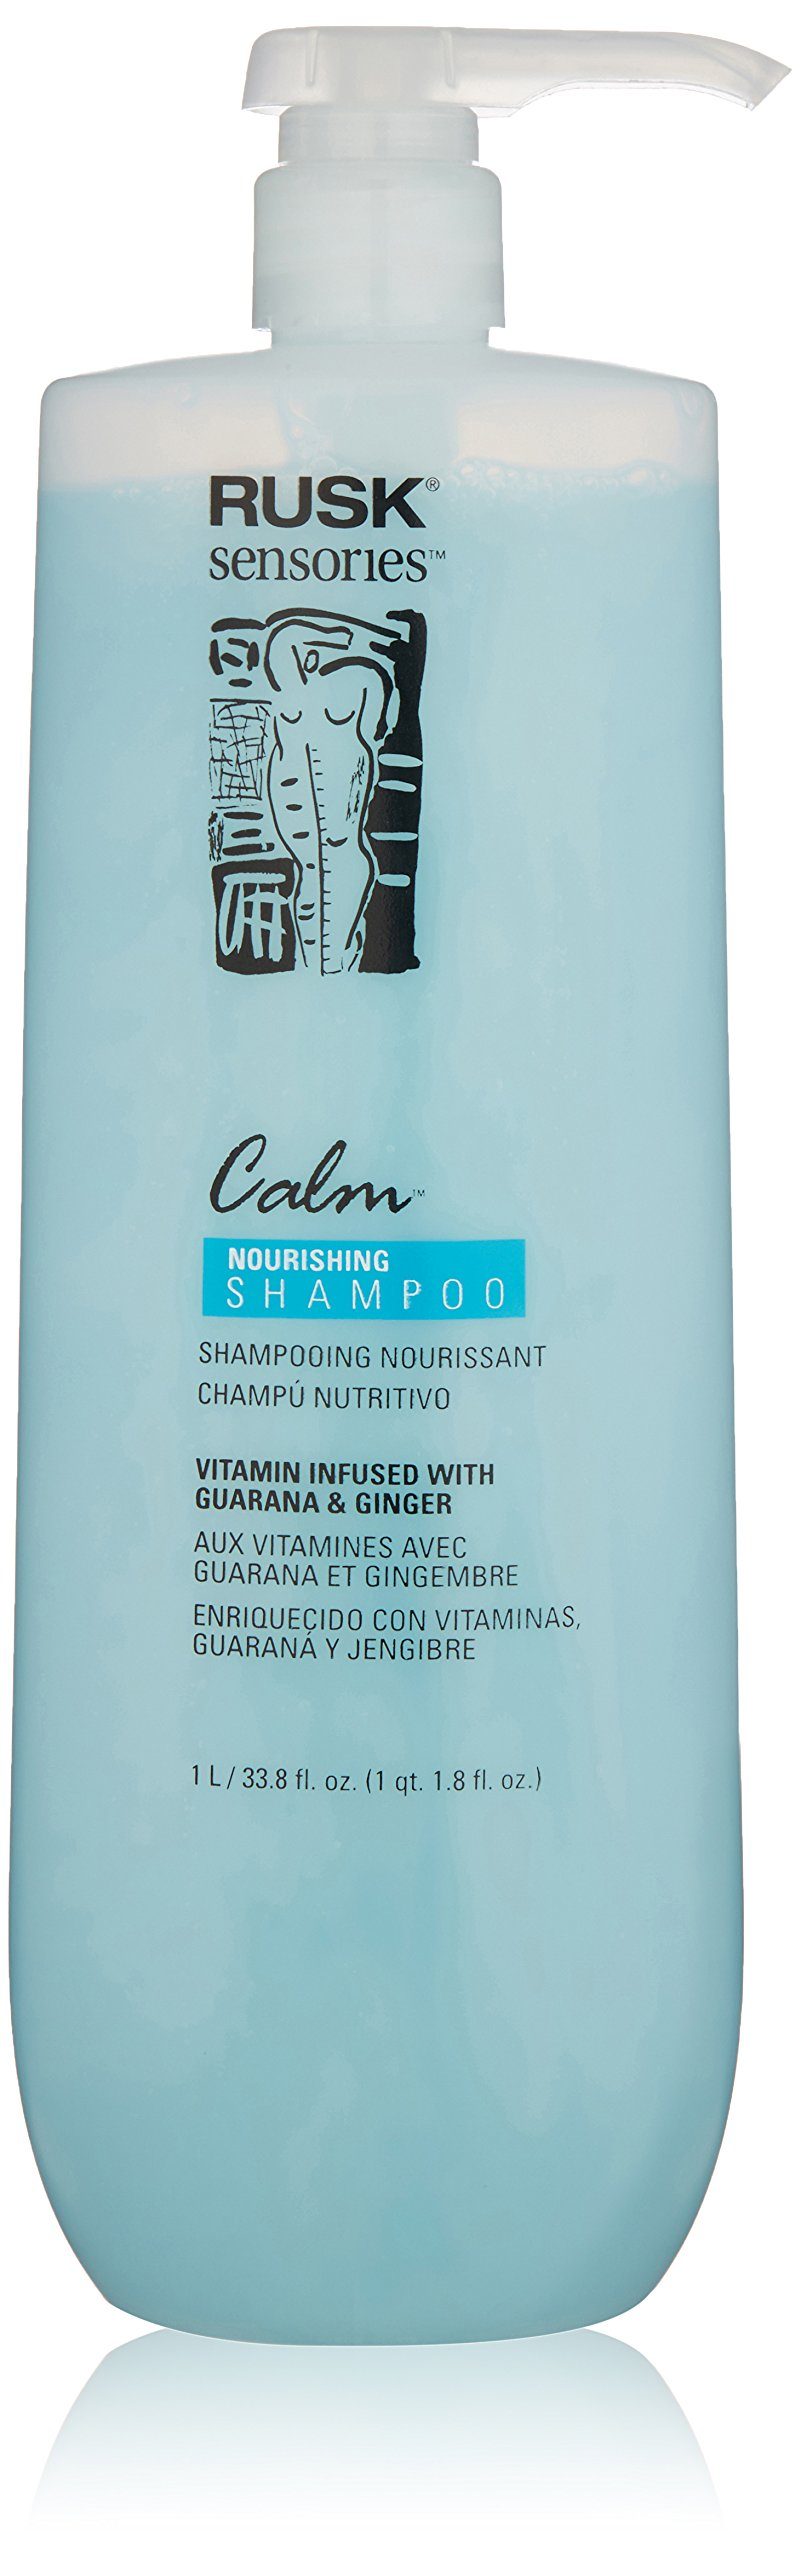 RUSK Sensories Calm Guarana and Ginger Nourishing Shampoo, 33.8 Fl. oz.